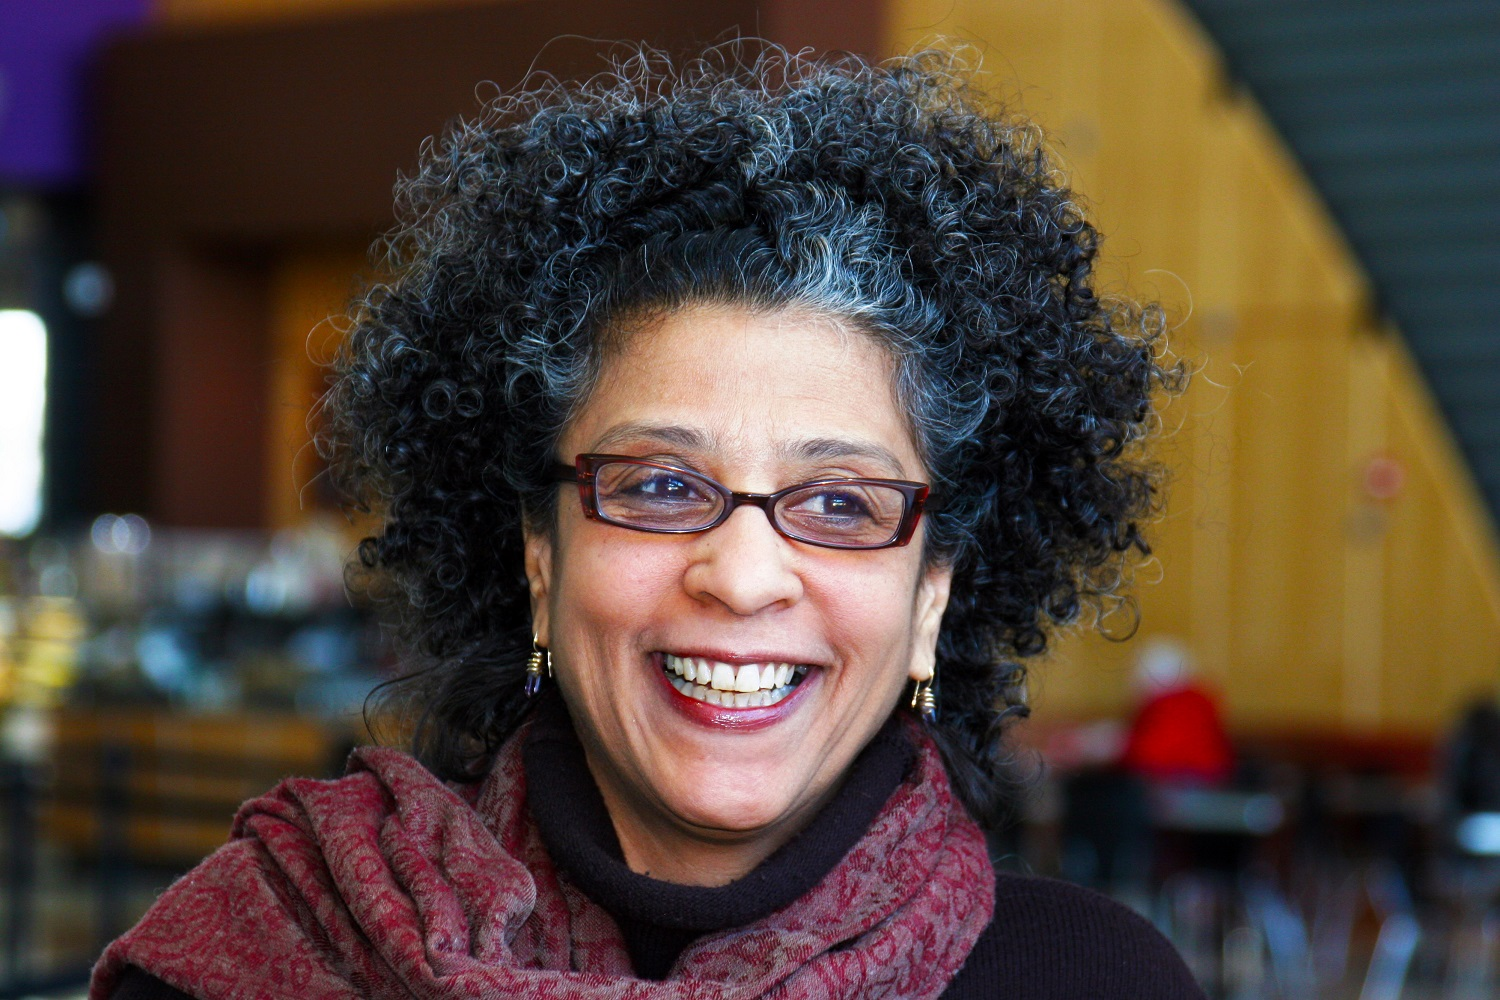 A woman smiling looking off into the distance with short curly black hair with bit of grey wearing red rimmed glasses and dangling earrings with a pink scarf around her neck.